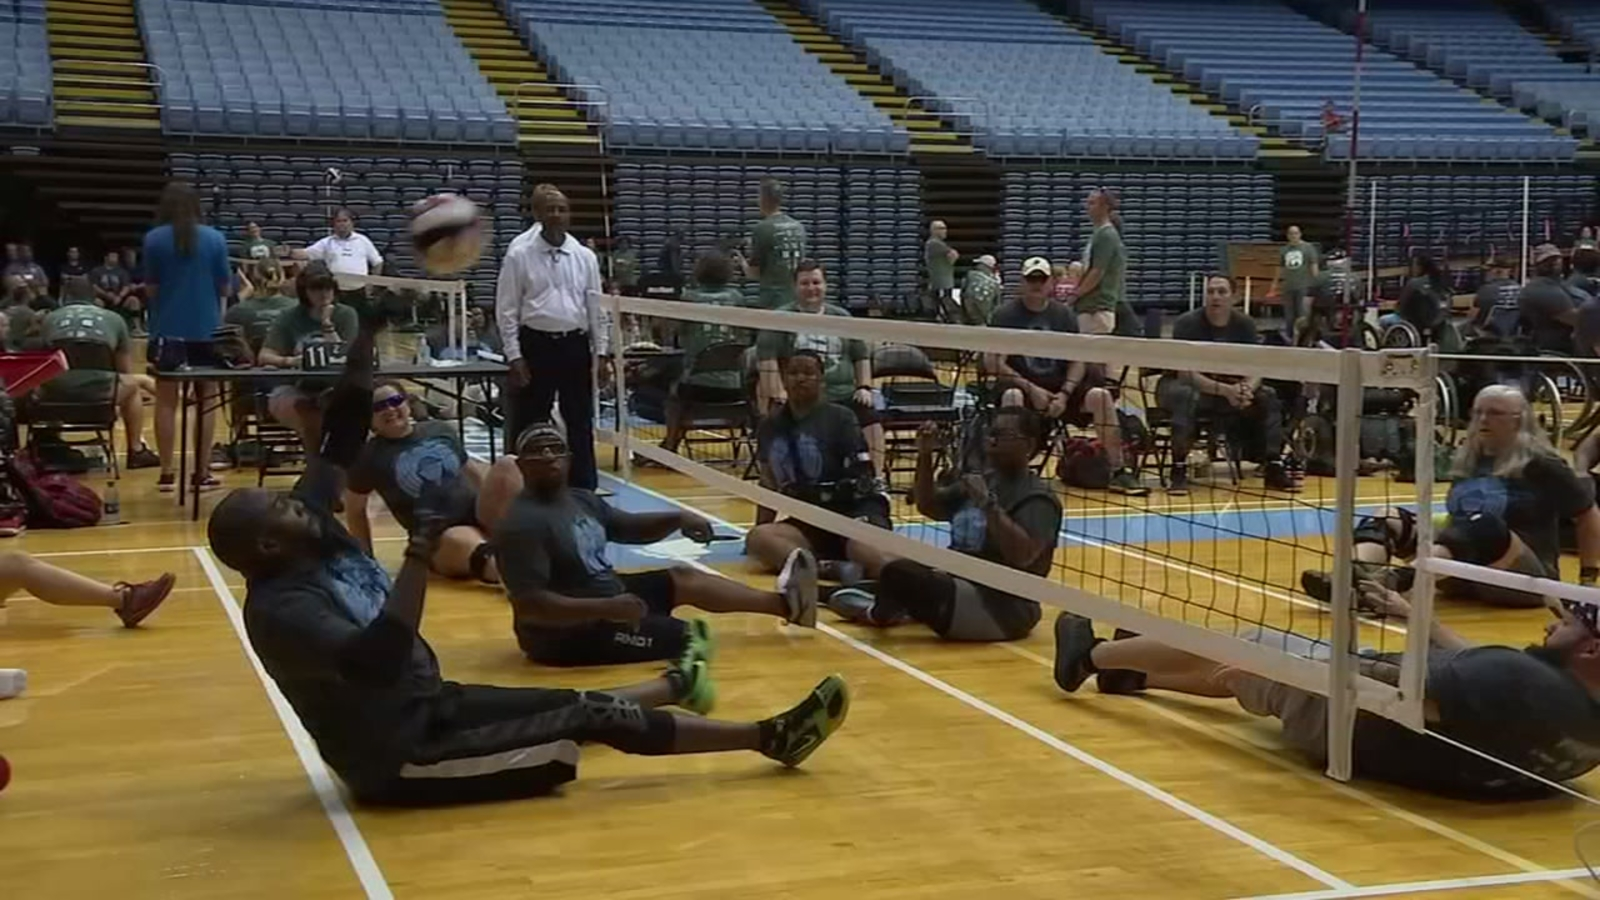 Valor Games Southeast empower disabled veterans competing in the Triangle